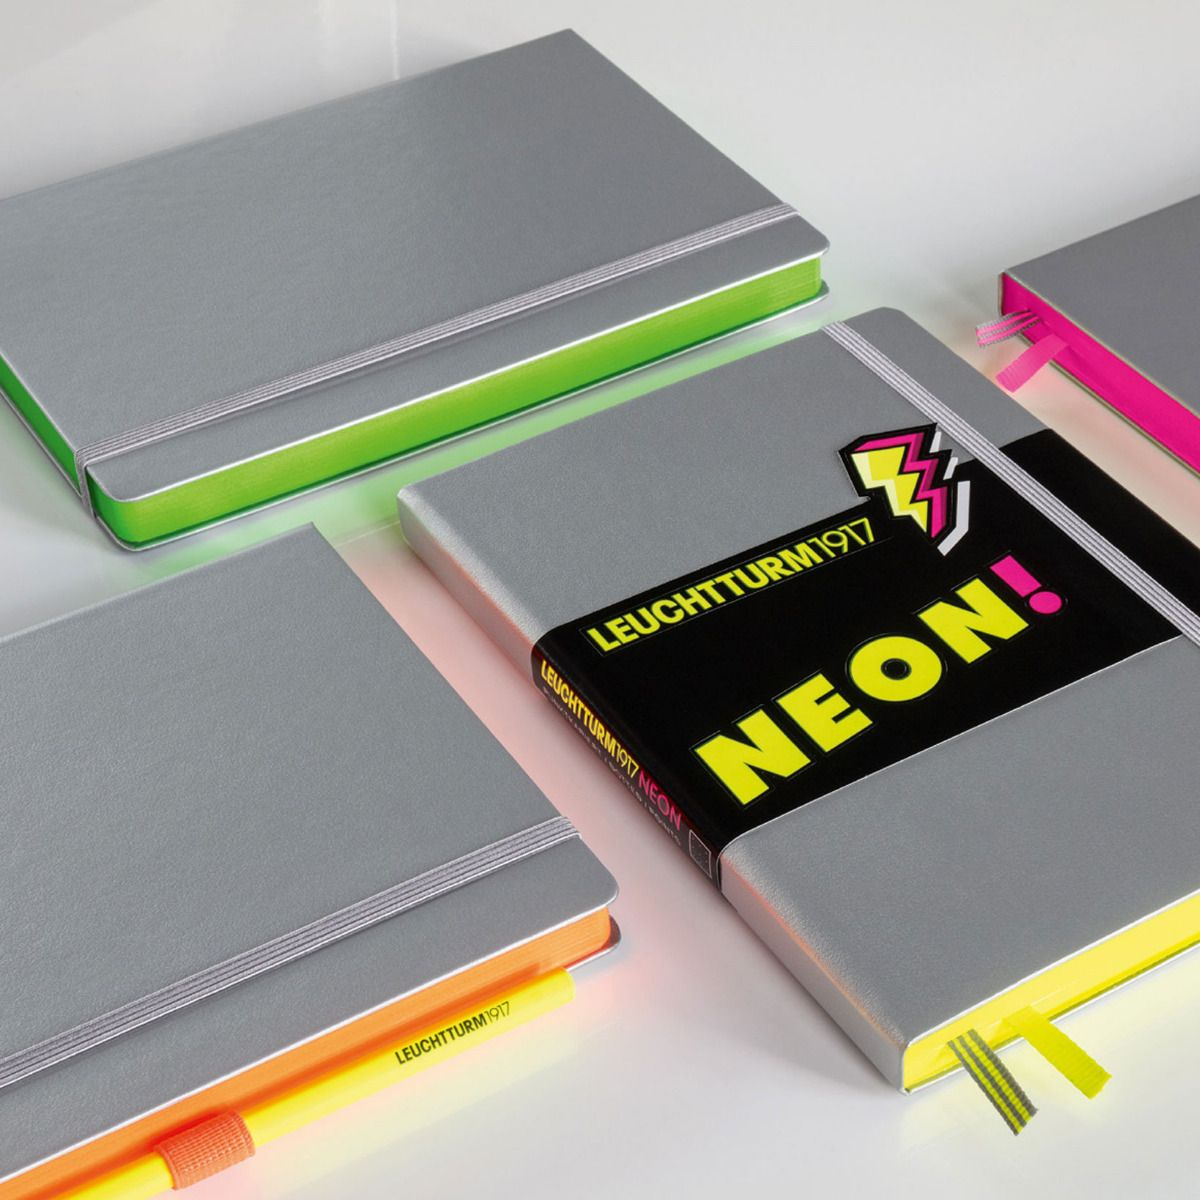 Notizbuch Neon! Edition